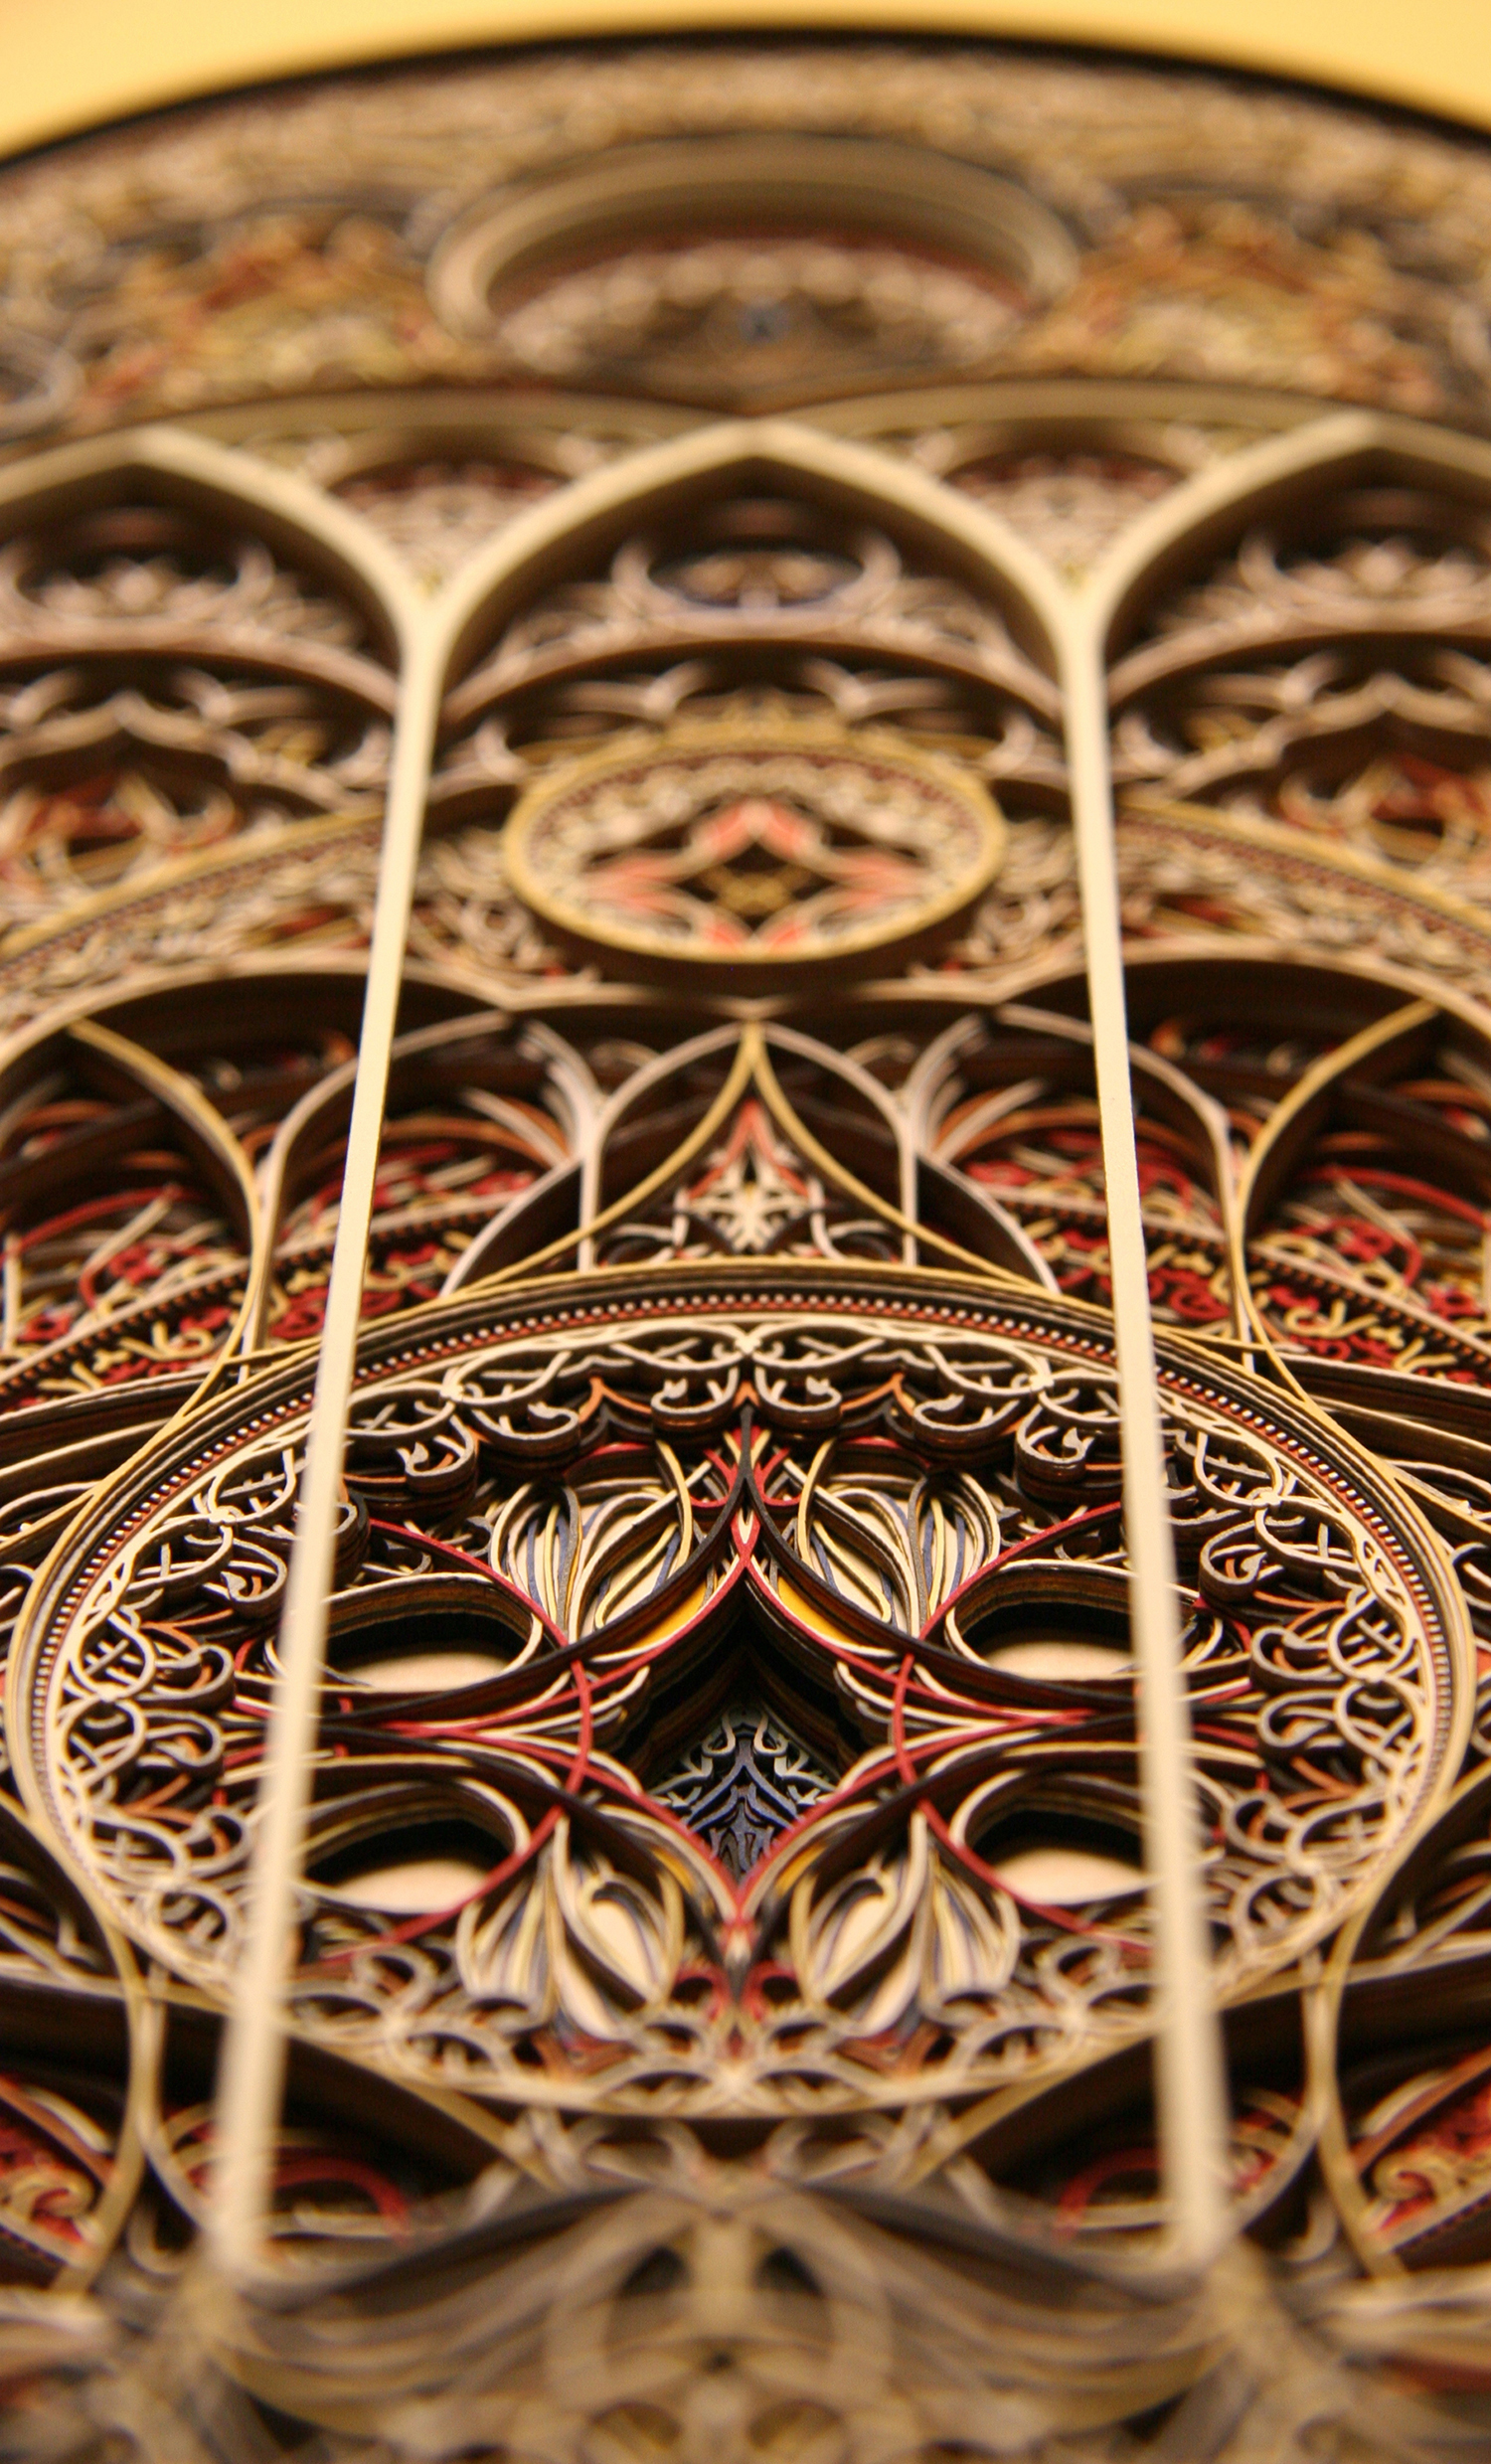 Ornate window-style art made with cut paper